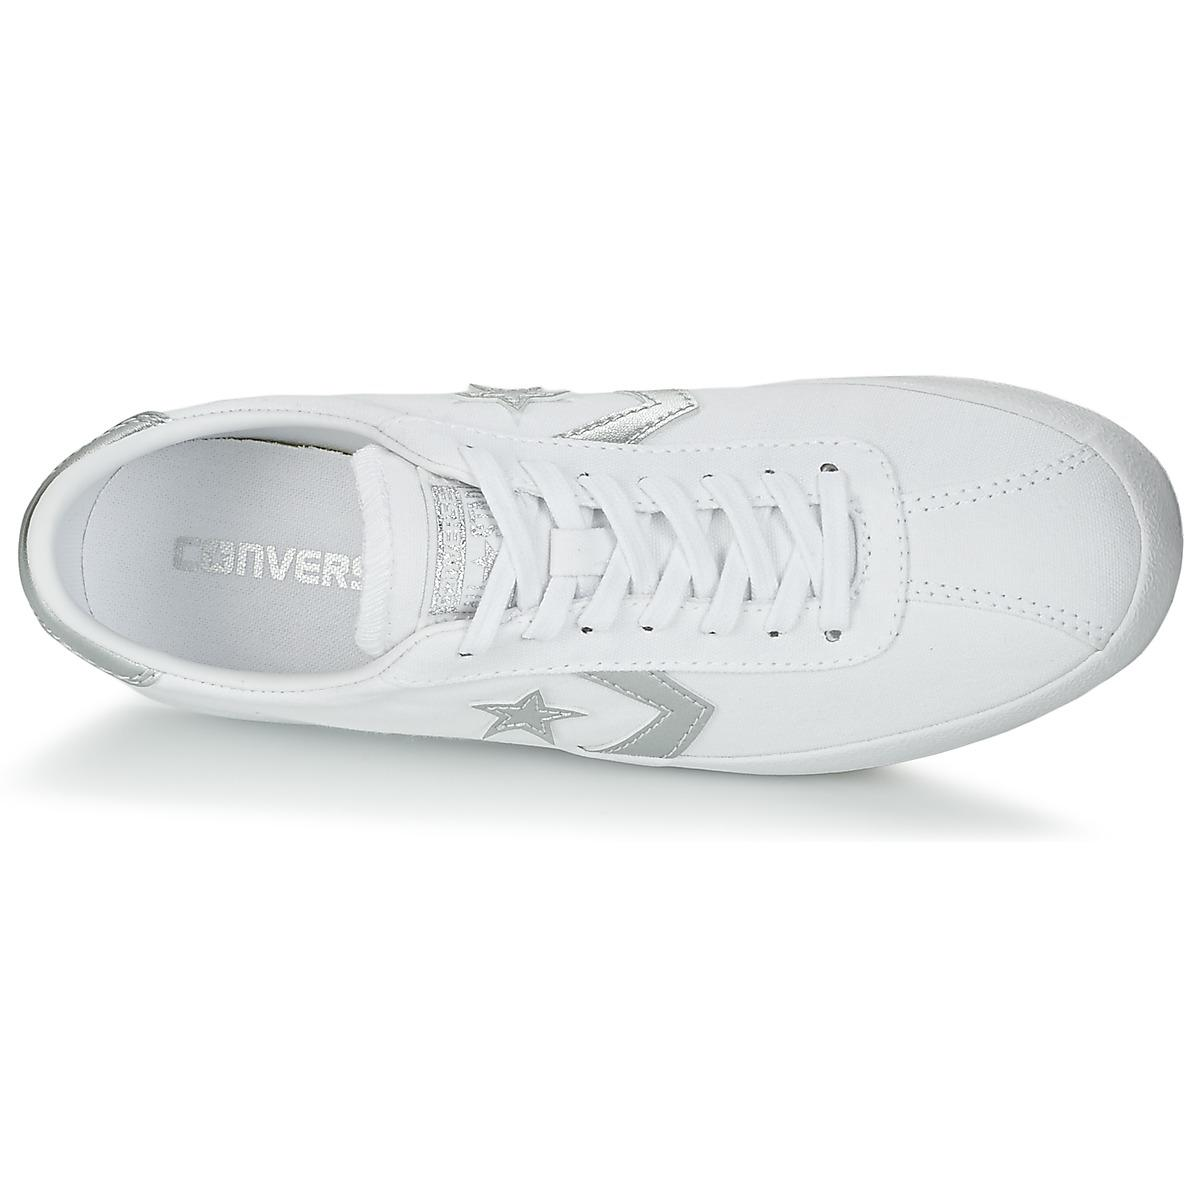 Converse Breakpoint Ox Women's Shoes (trainers) In White - Save 37%